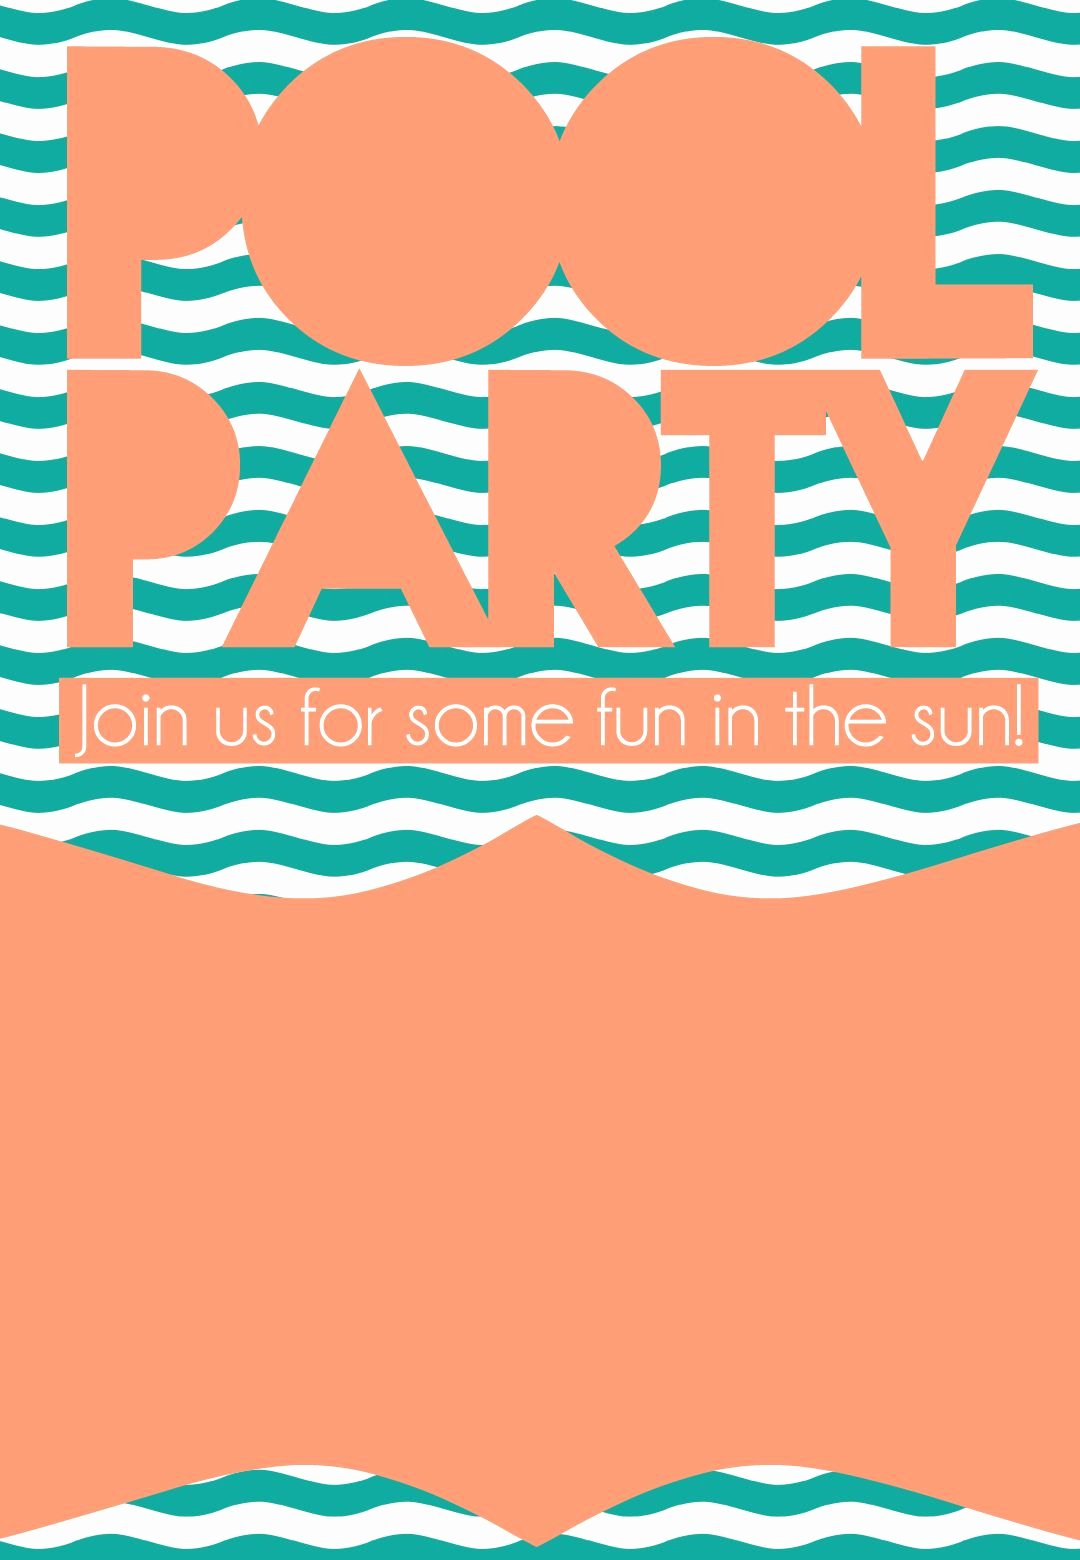 Pool Party Invite Template New Summer Pool Party Invitation Free Printable Diy